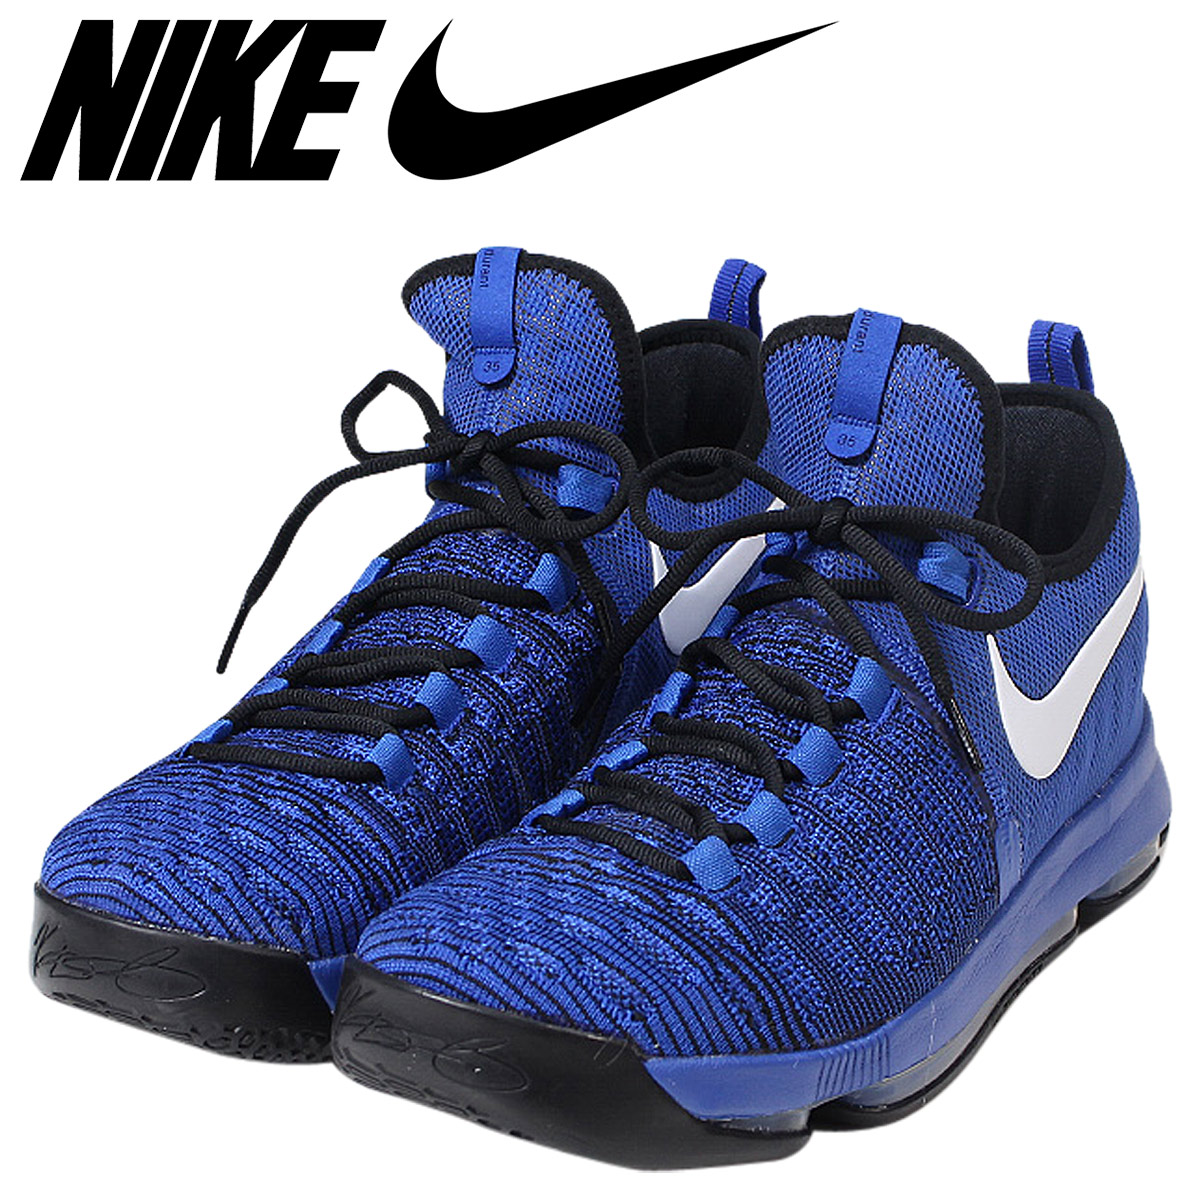 huge discount 2d477 67b33 Nike NIKE zoom KD9 sneakers ZOOM KD 9 EP GAME ROYAL WHITE men 844,382-410 Kevin  Durant blue